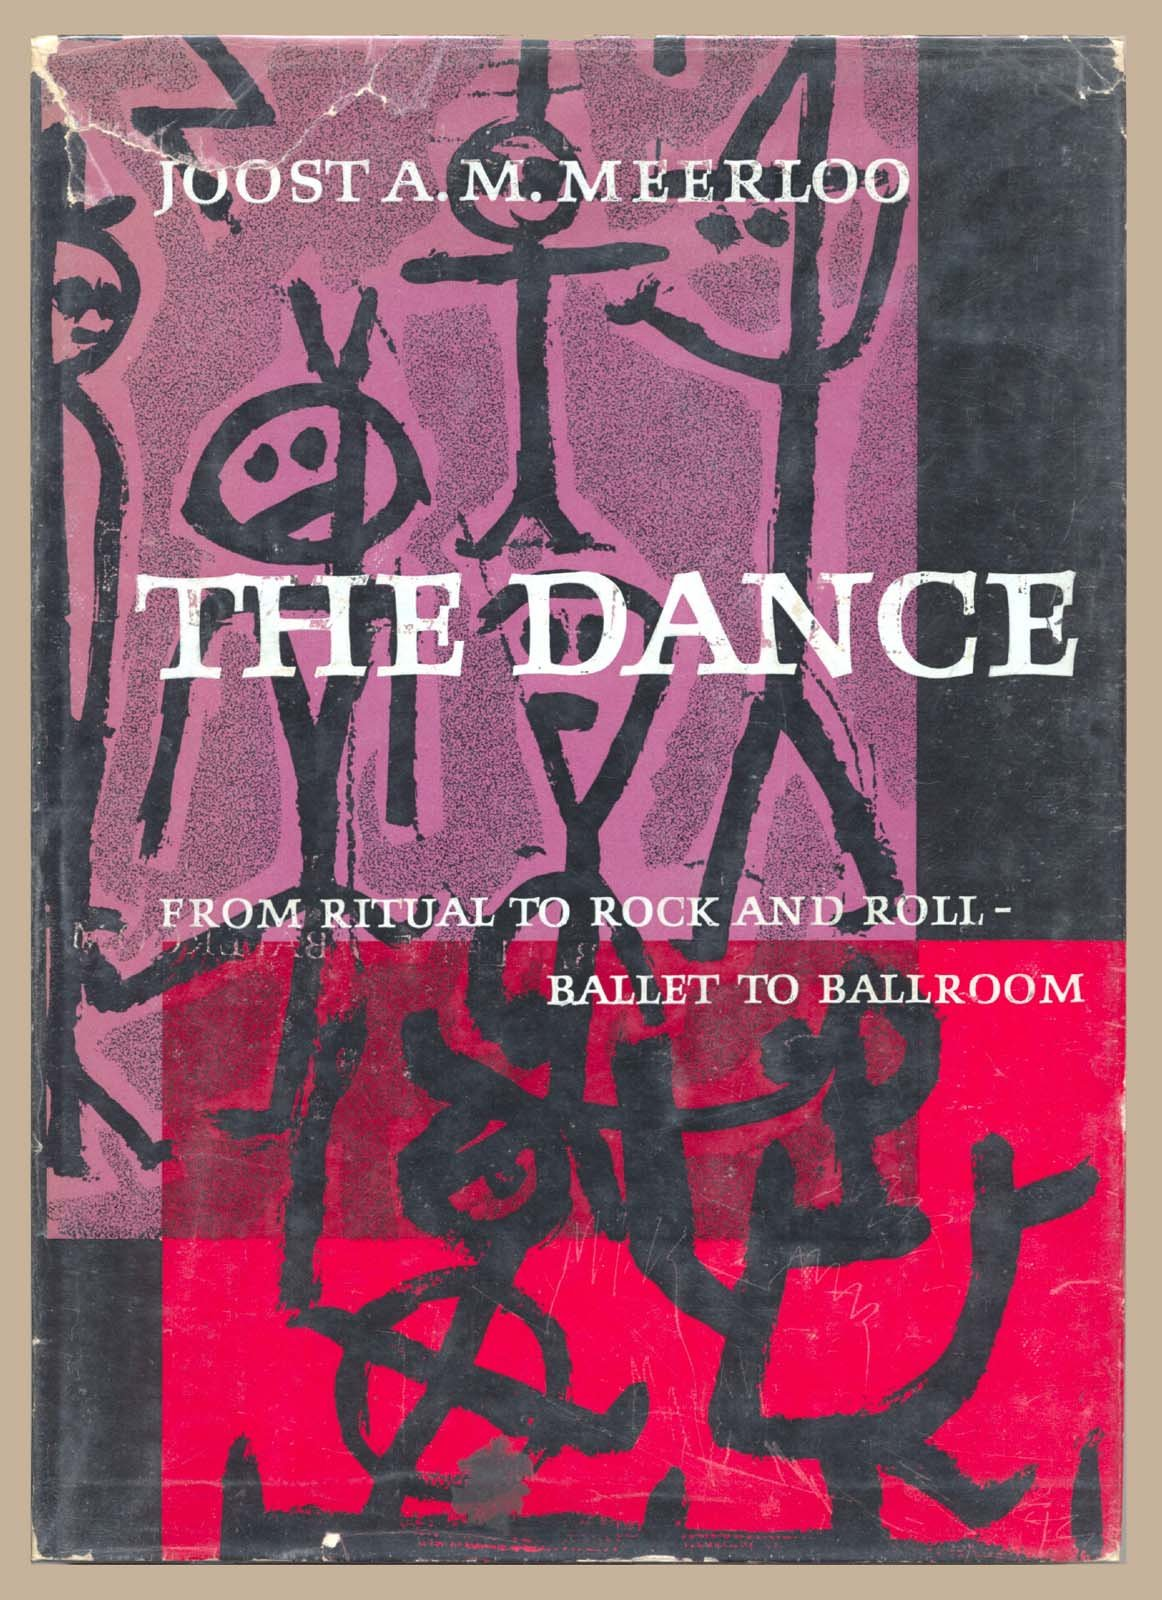 The Dance: From Ritual to Rock-and-Roll, Ballet to Ballroom